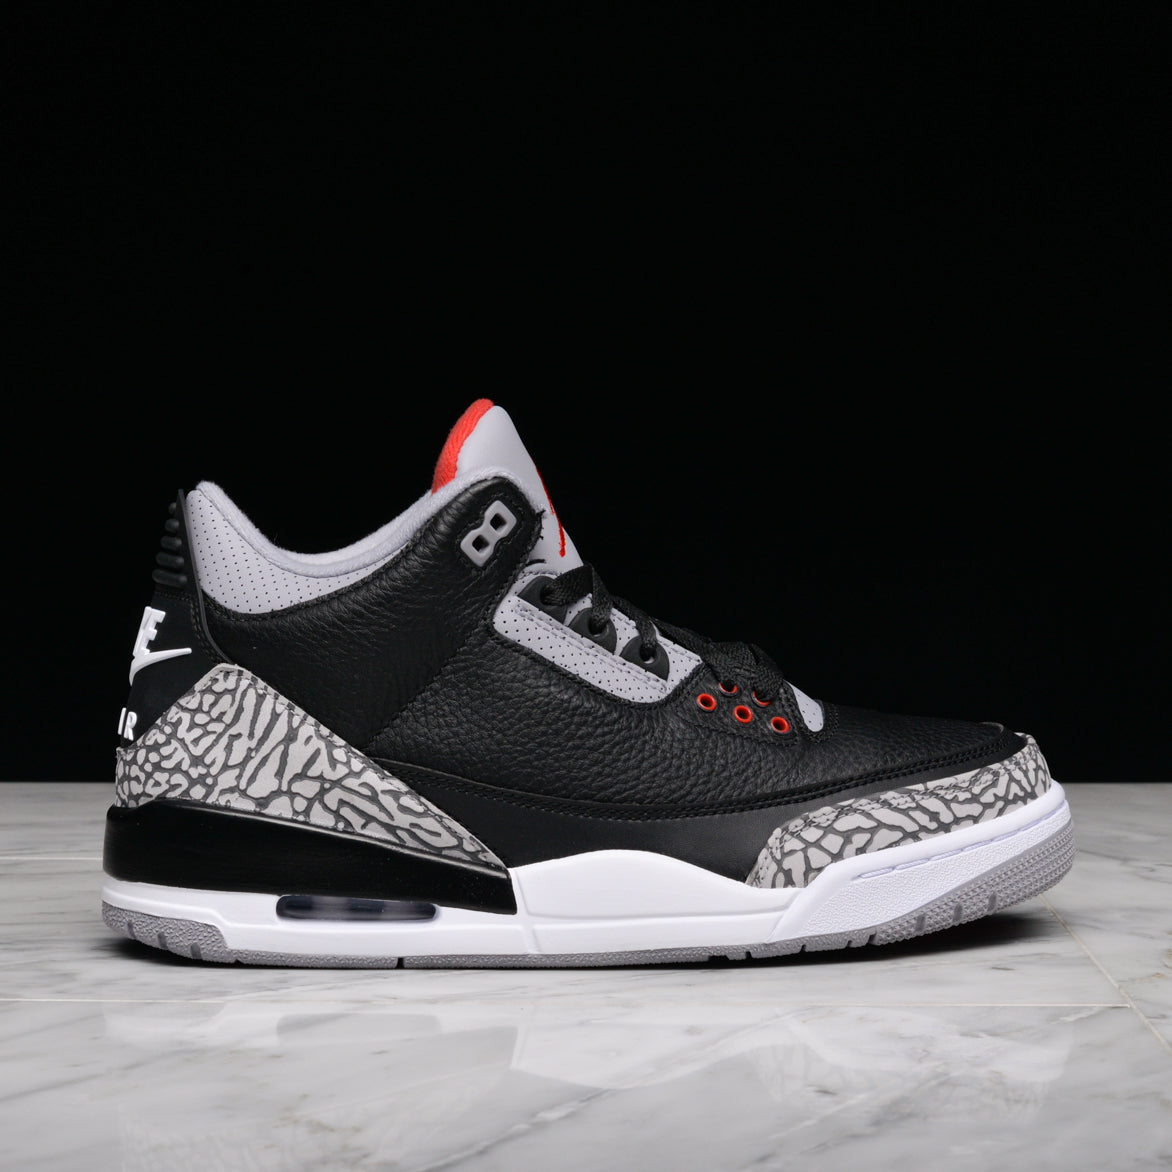 new product 3aa35 5a1f3 ... low cost air jordan 3 retro og black cement 6e0f1 da726